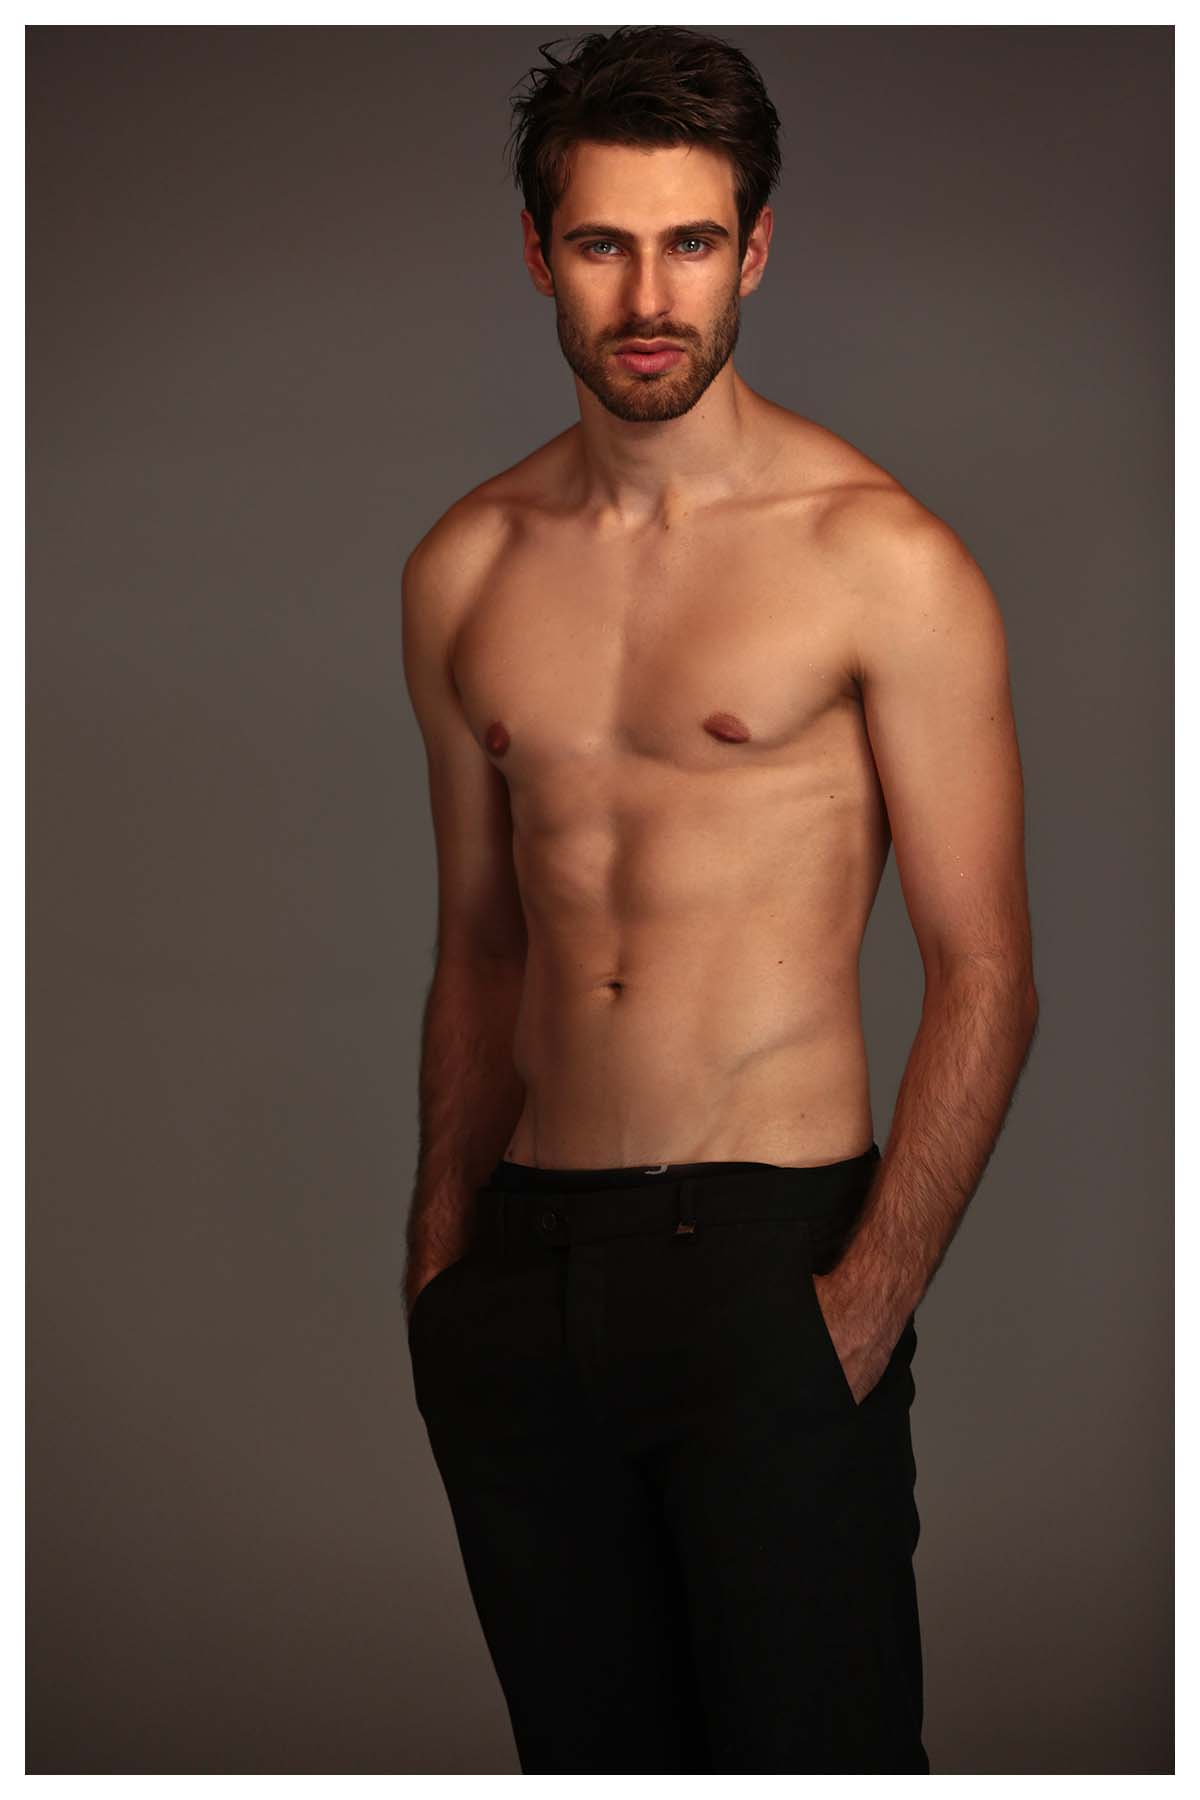 Felipe Pomper by Pupin & Deleu for Brazilian Male Model